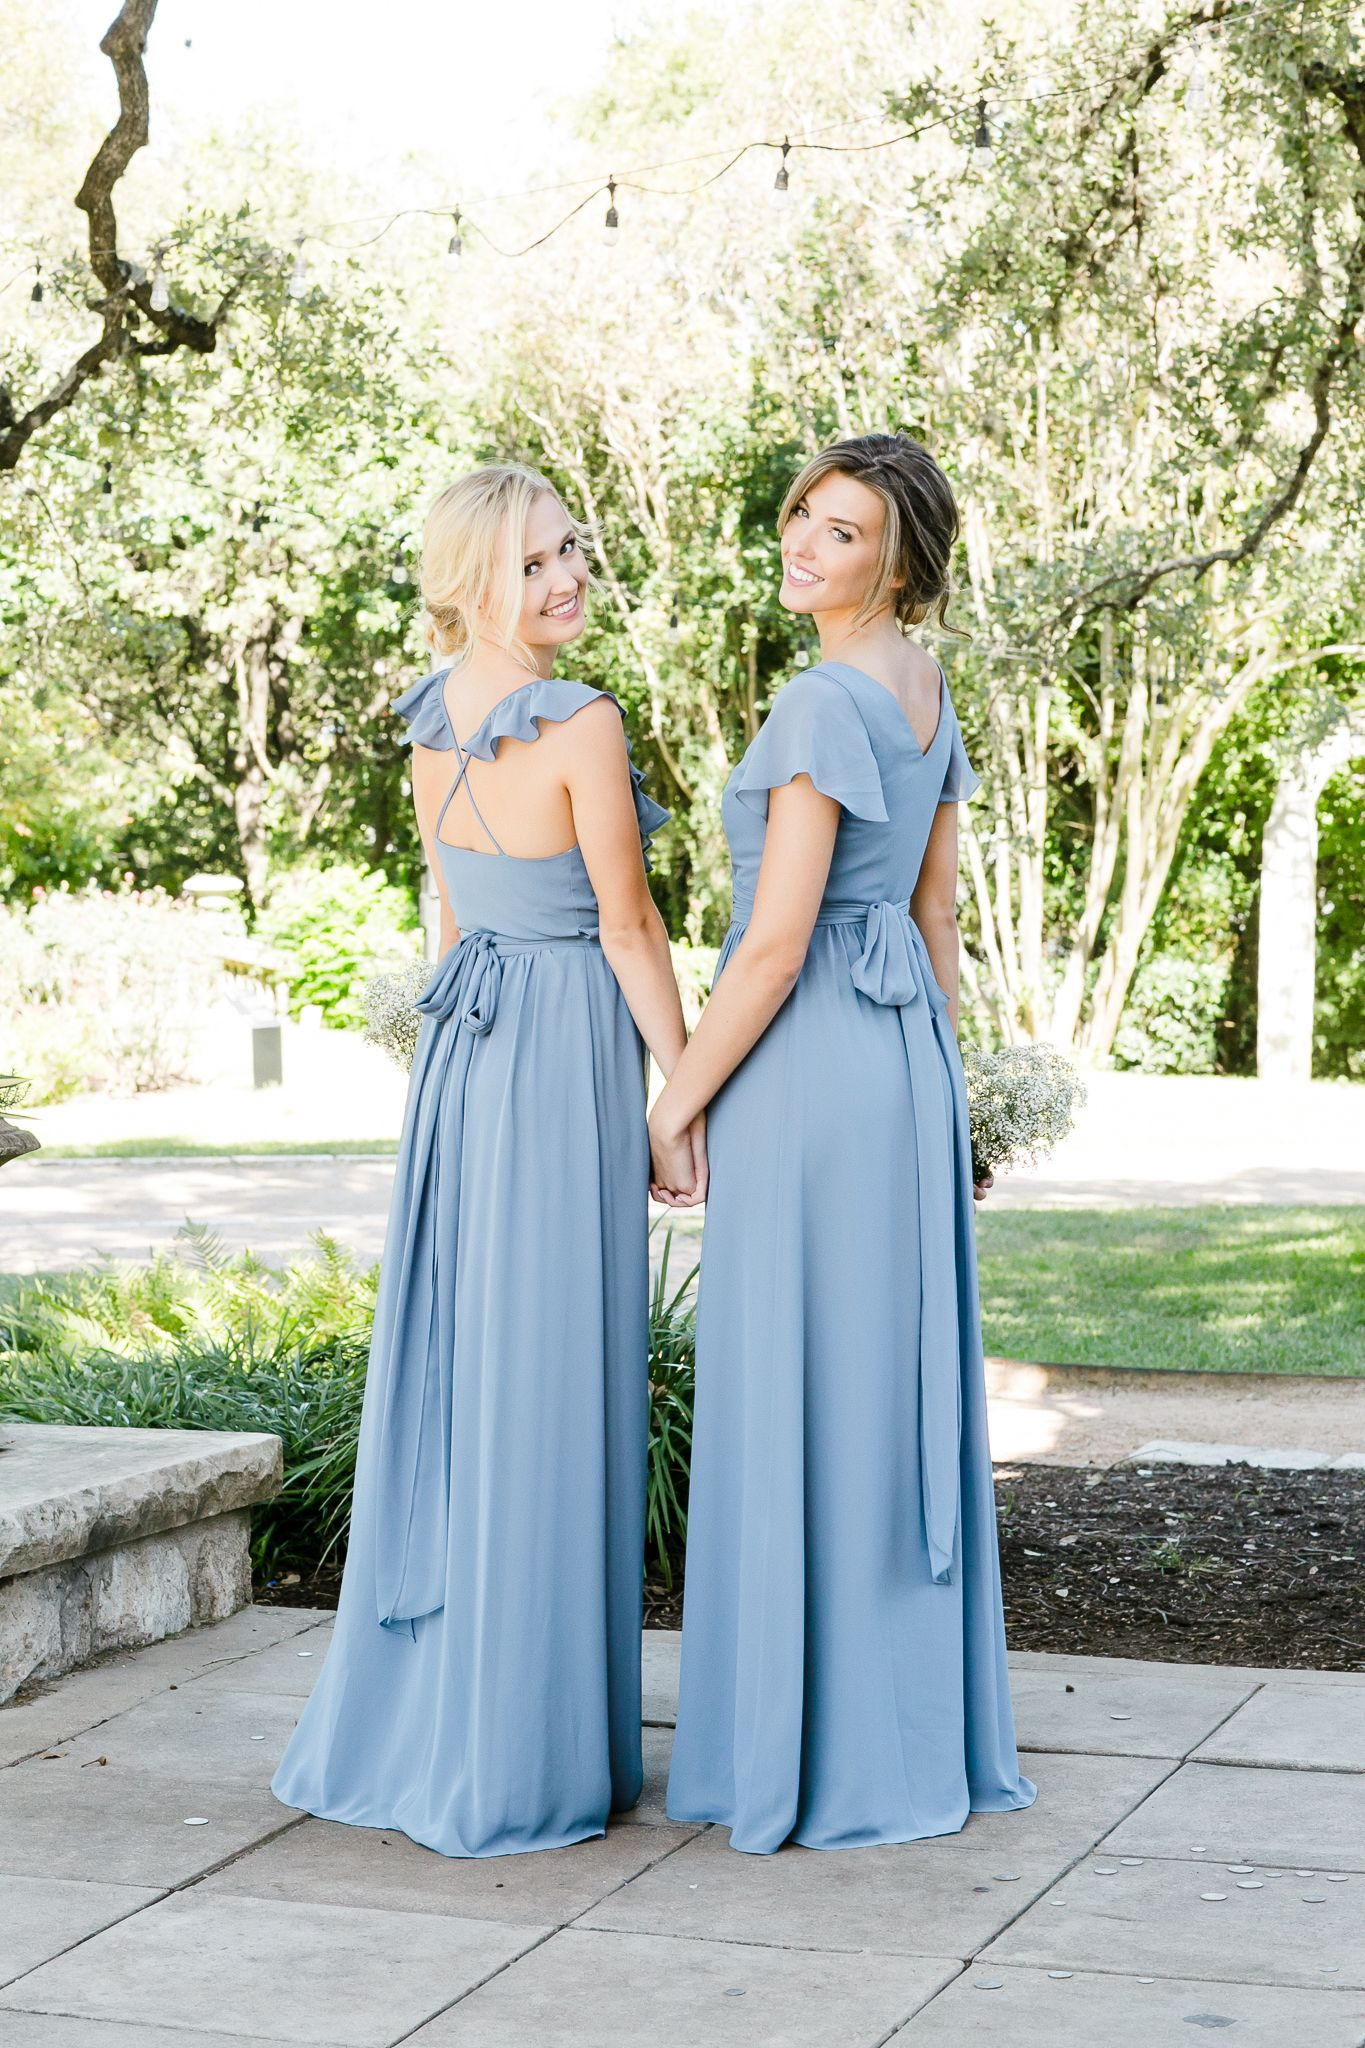 Mix And Match Revelry Bridesmaid Dresses Separates Has A Wide Selection Of Unique Bridesmaids Including Tulle Skirts Clic Chiffon